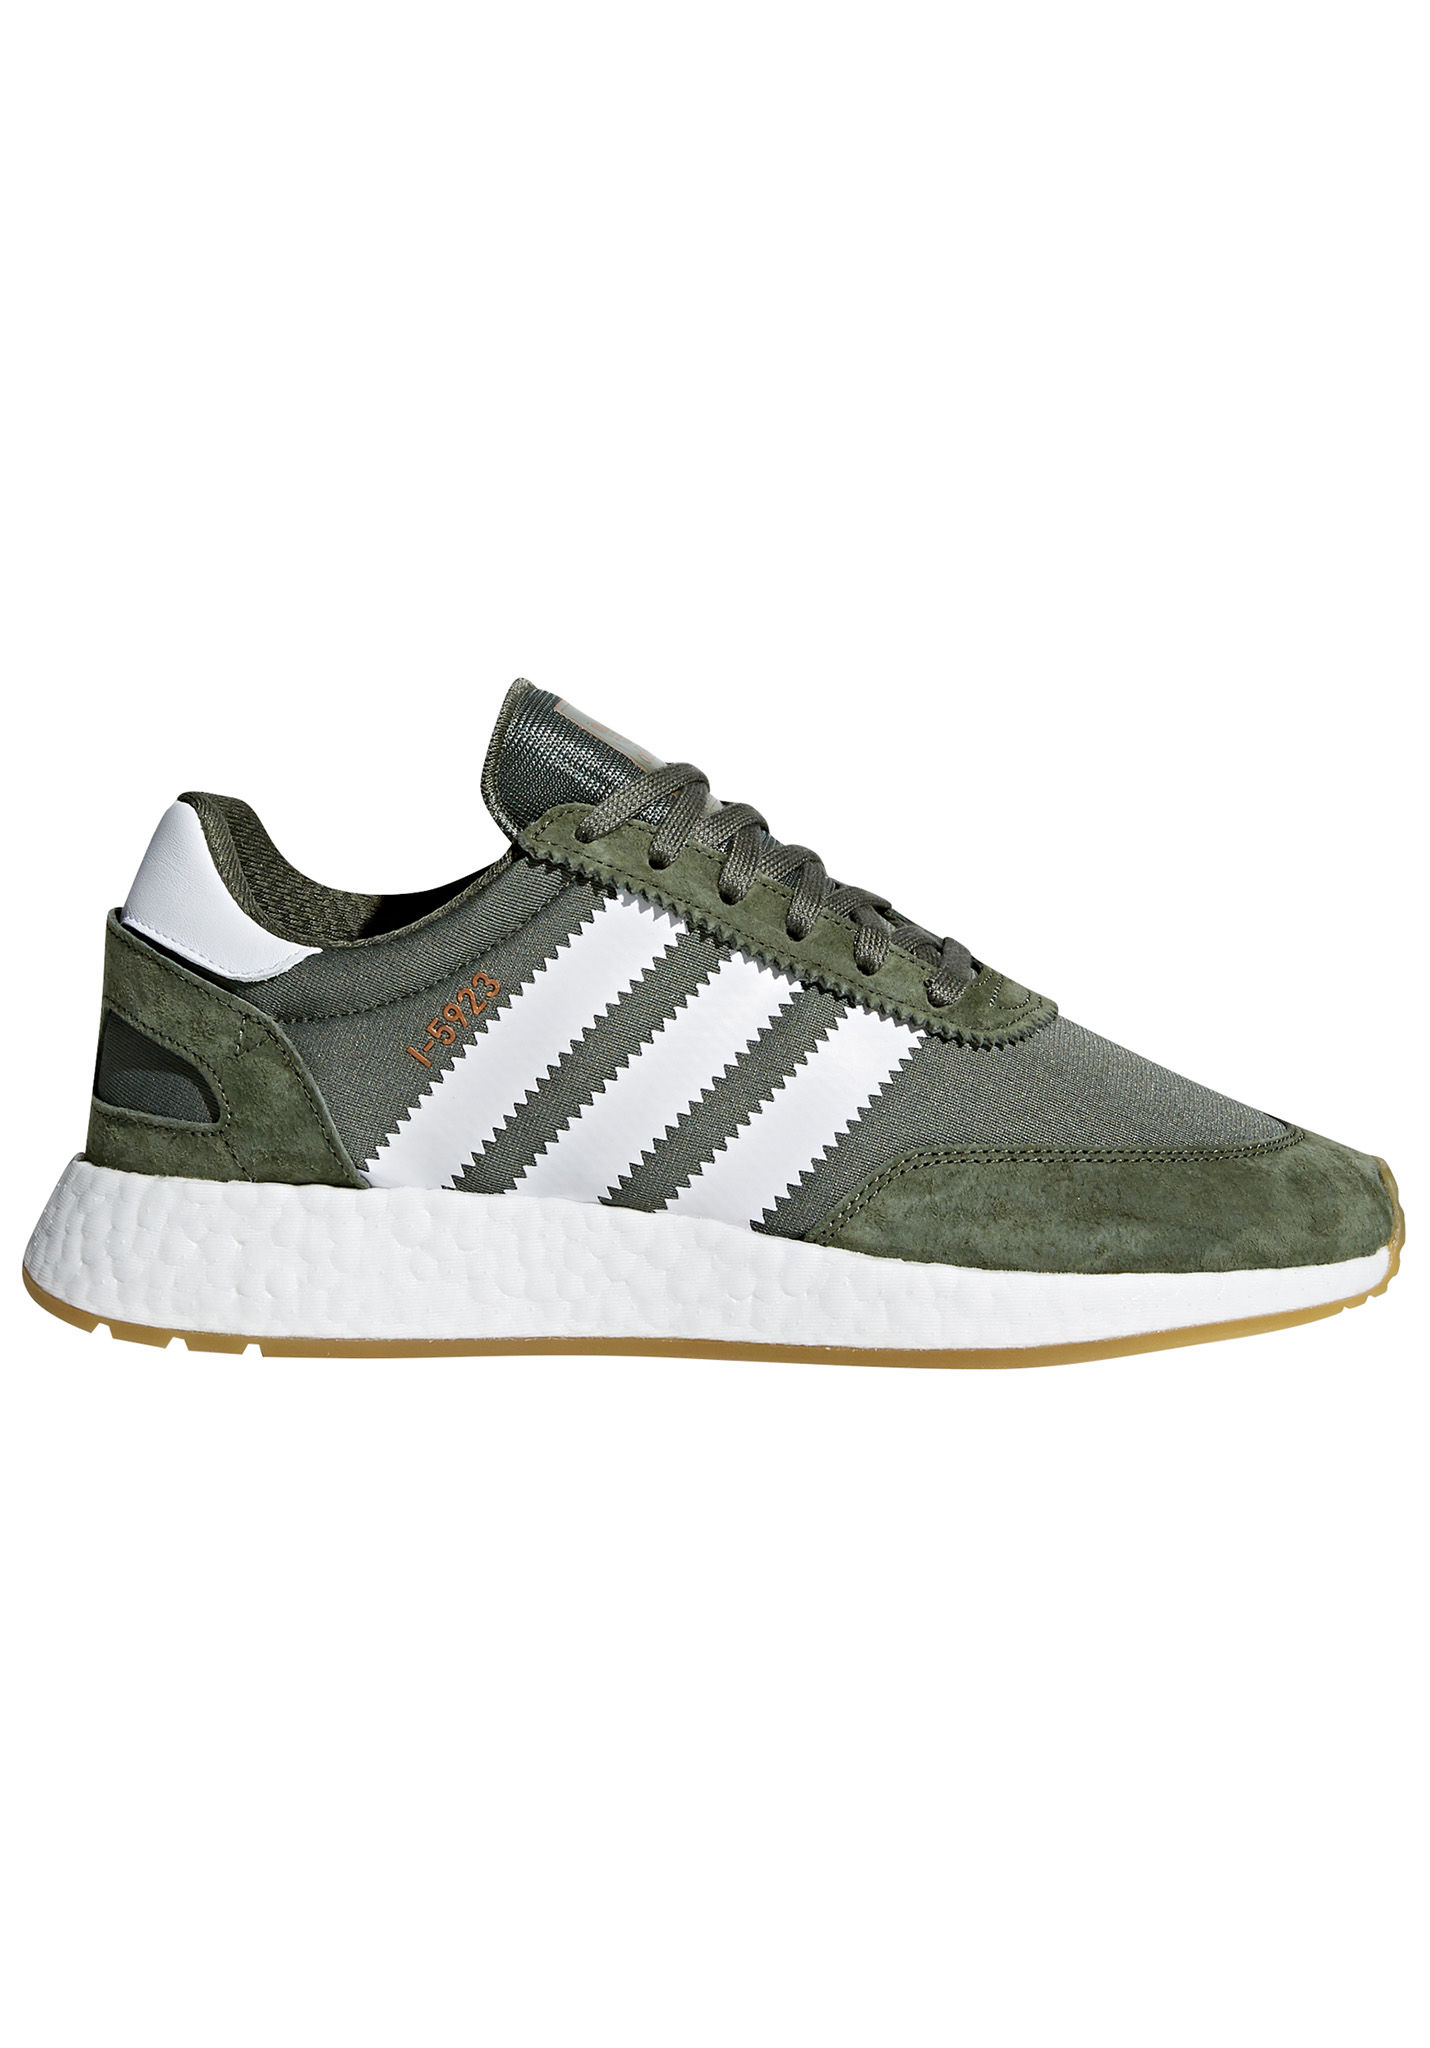 Sports Planet I 5923 Groen Sneakers Adidas Voor Heren Originals drBeCxo